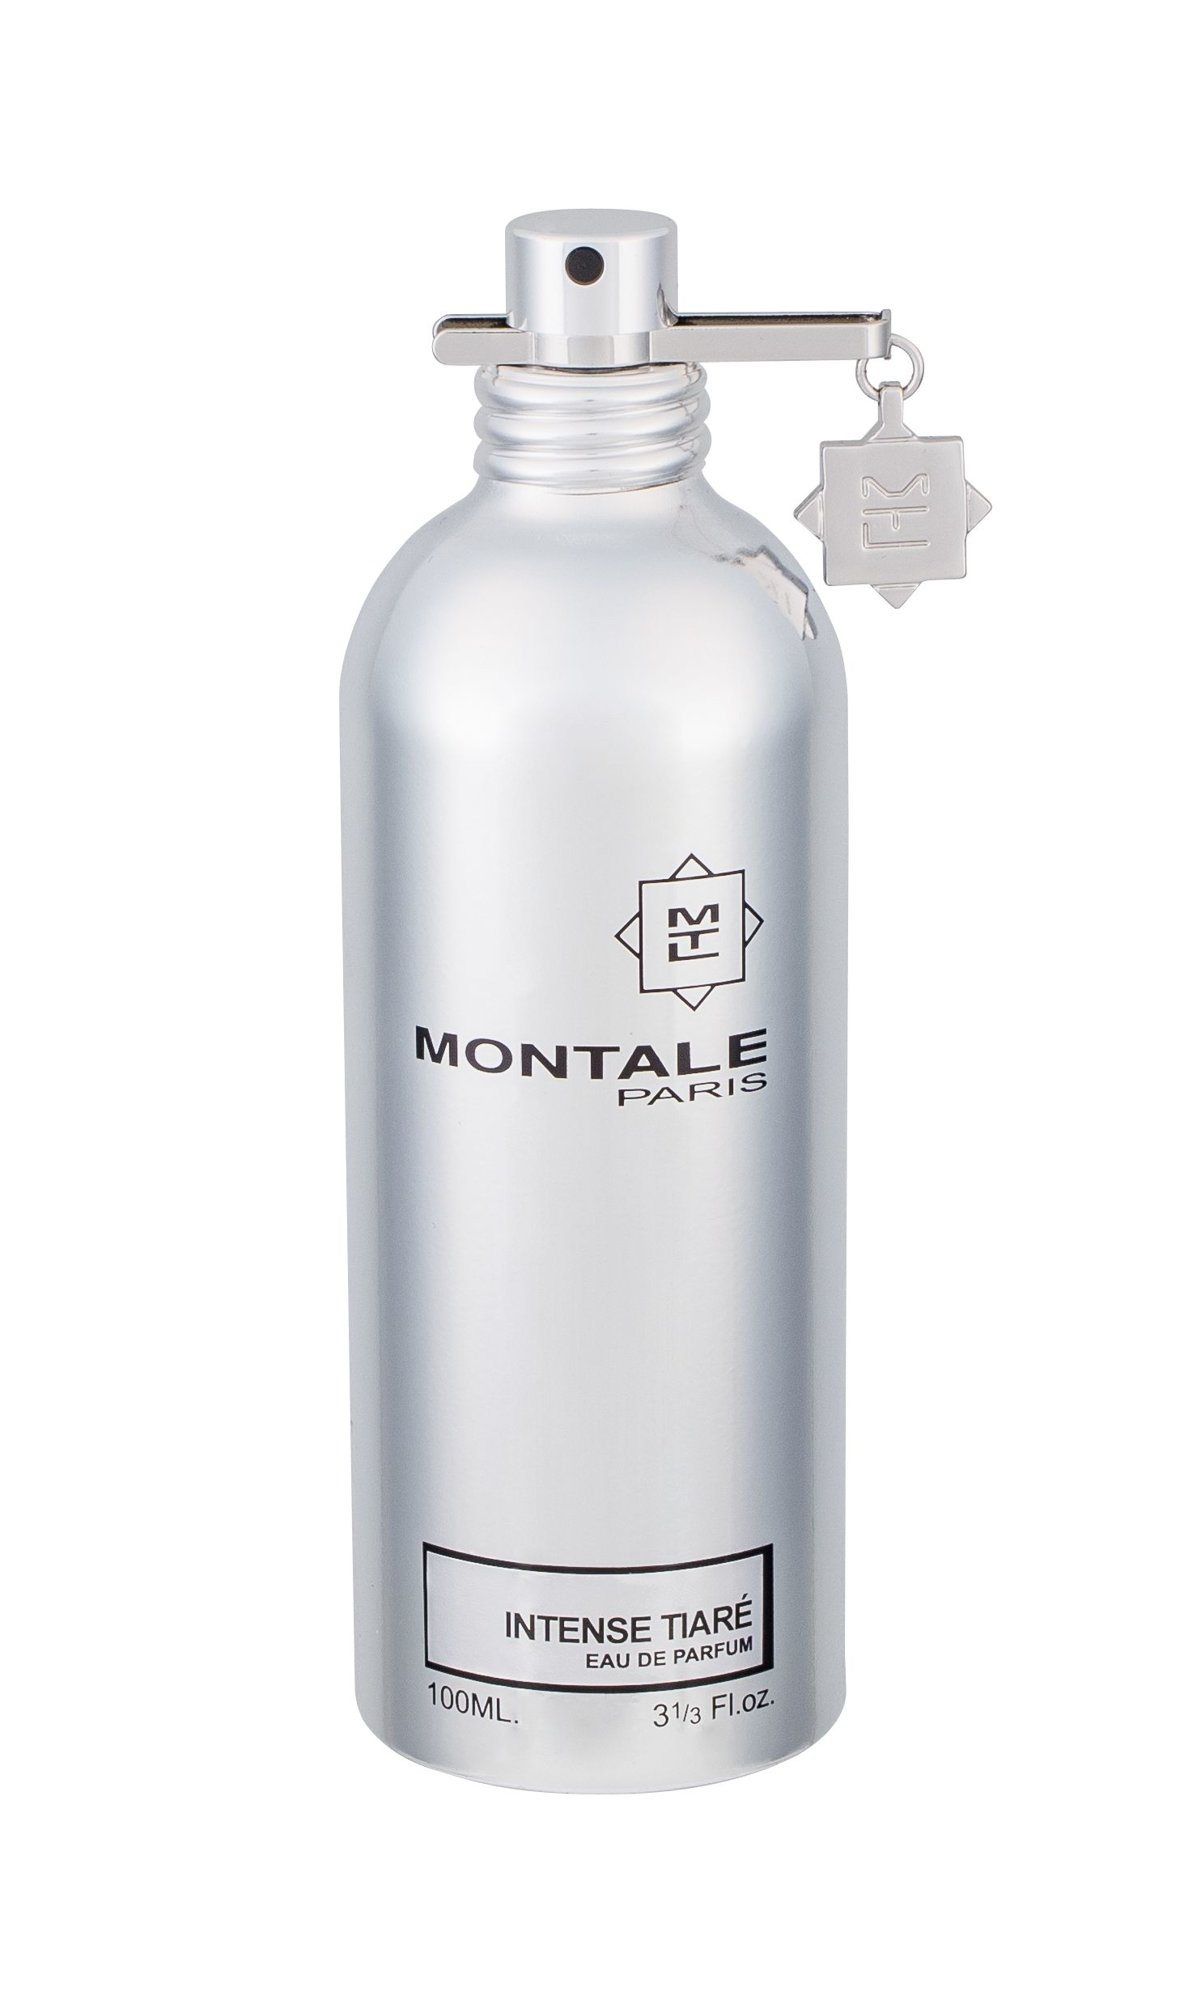 Montale Paris Intense Tiaré, edp 100ml